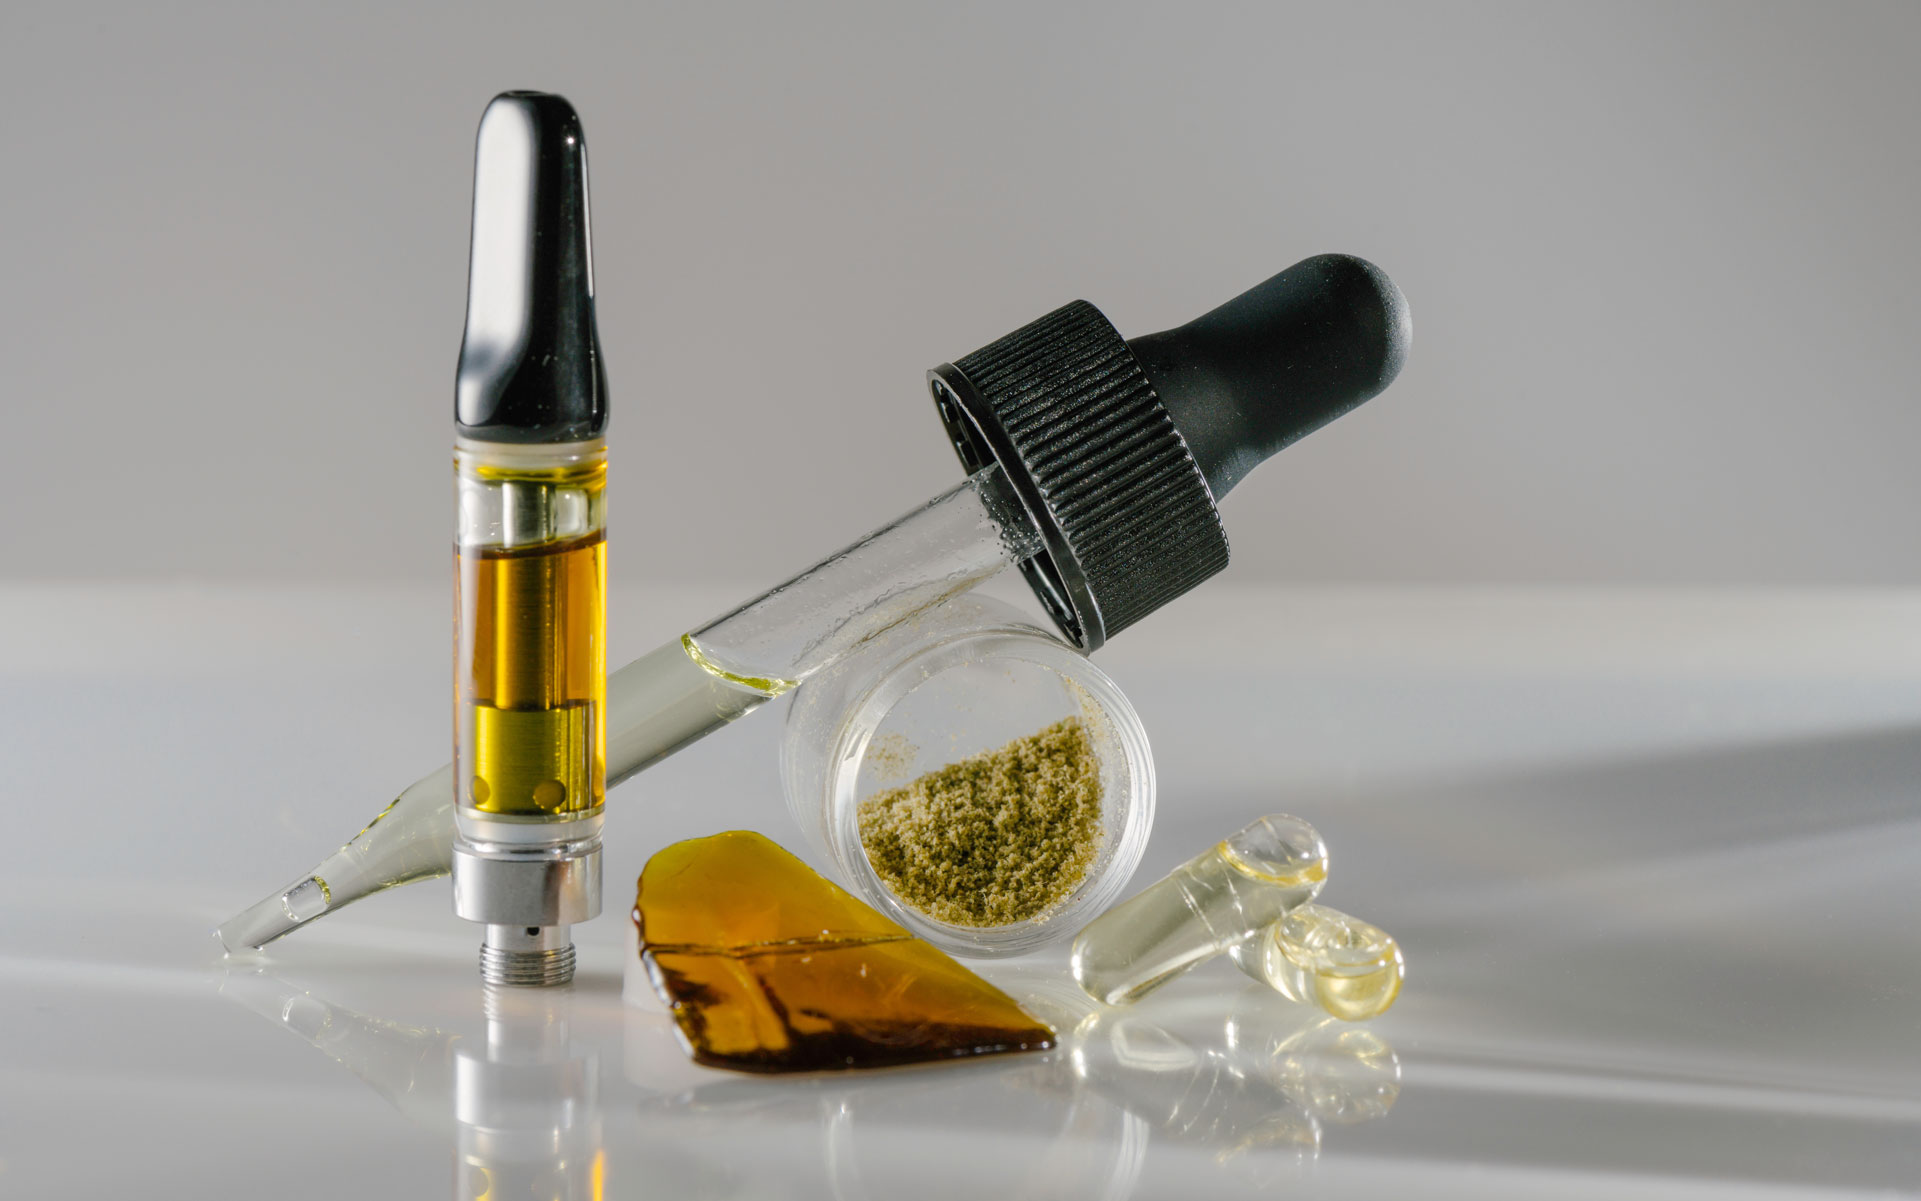 Christina Lake Cannabis To Market Cannabis Distillate Oils With Higher THC Concentration